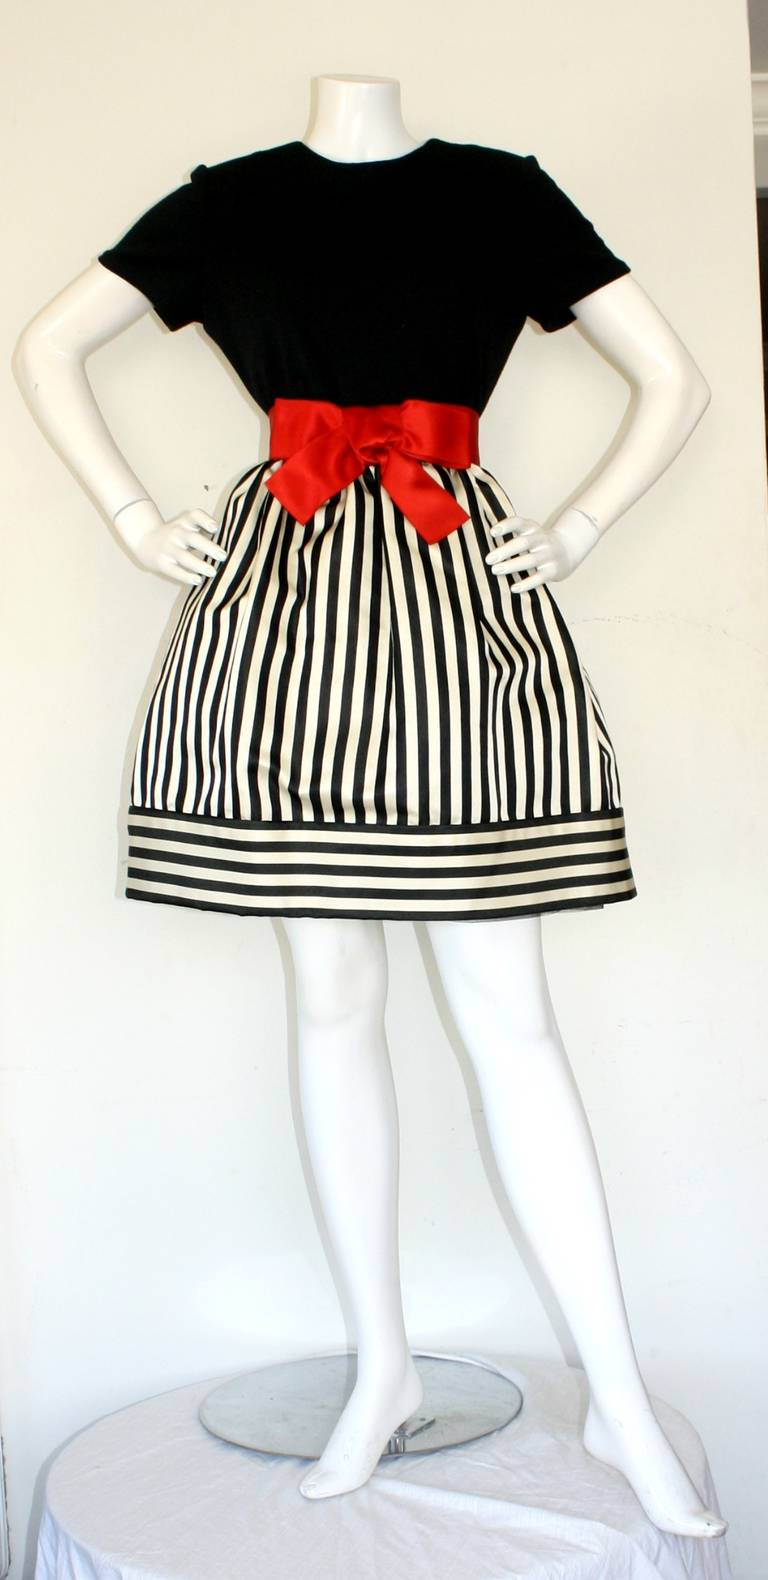 Bill Blass Vintage Black & White Stripe Dress w/ Red Bow Belt 2